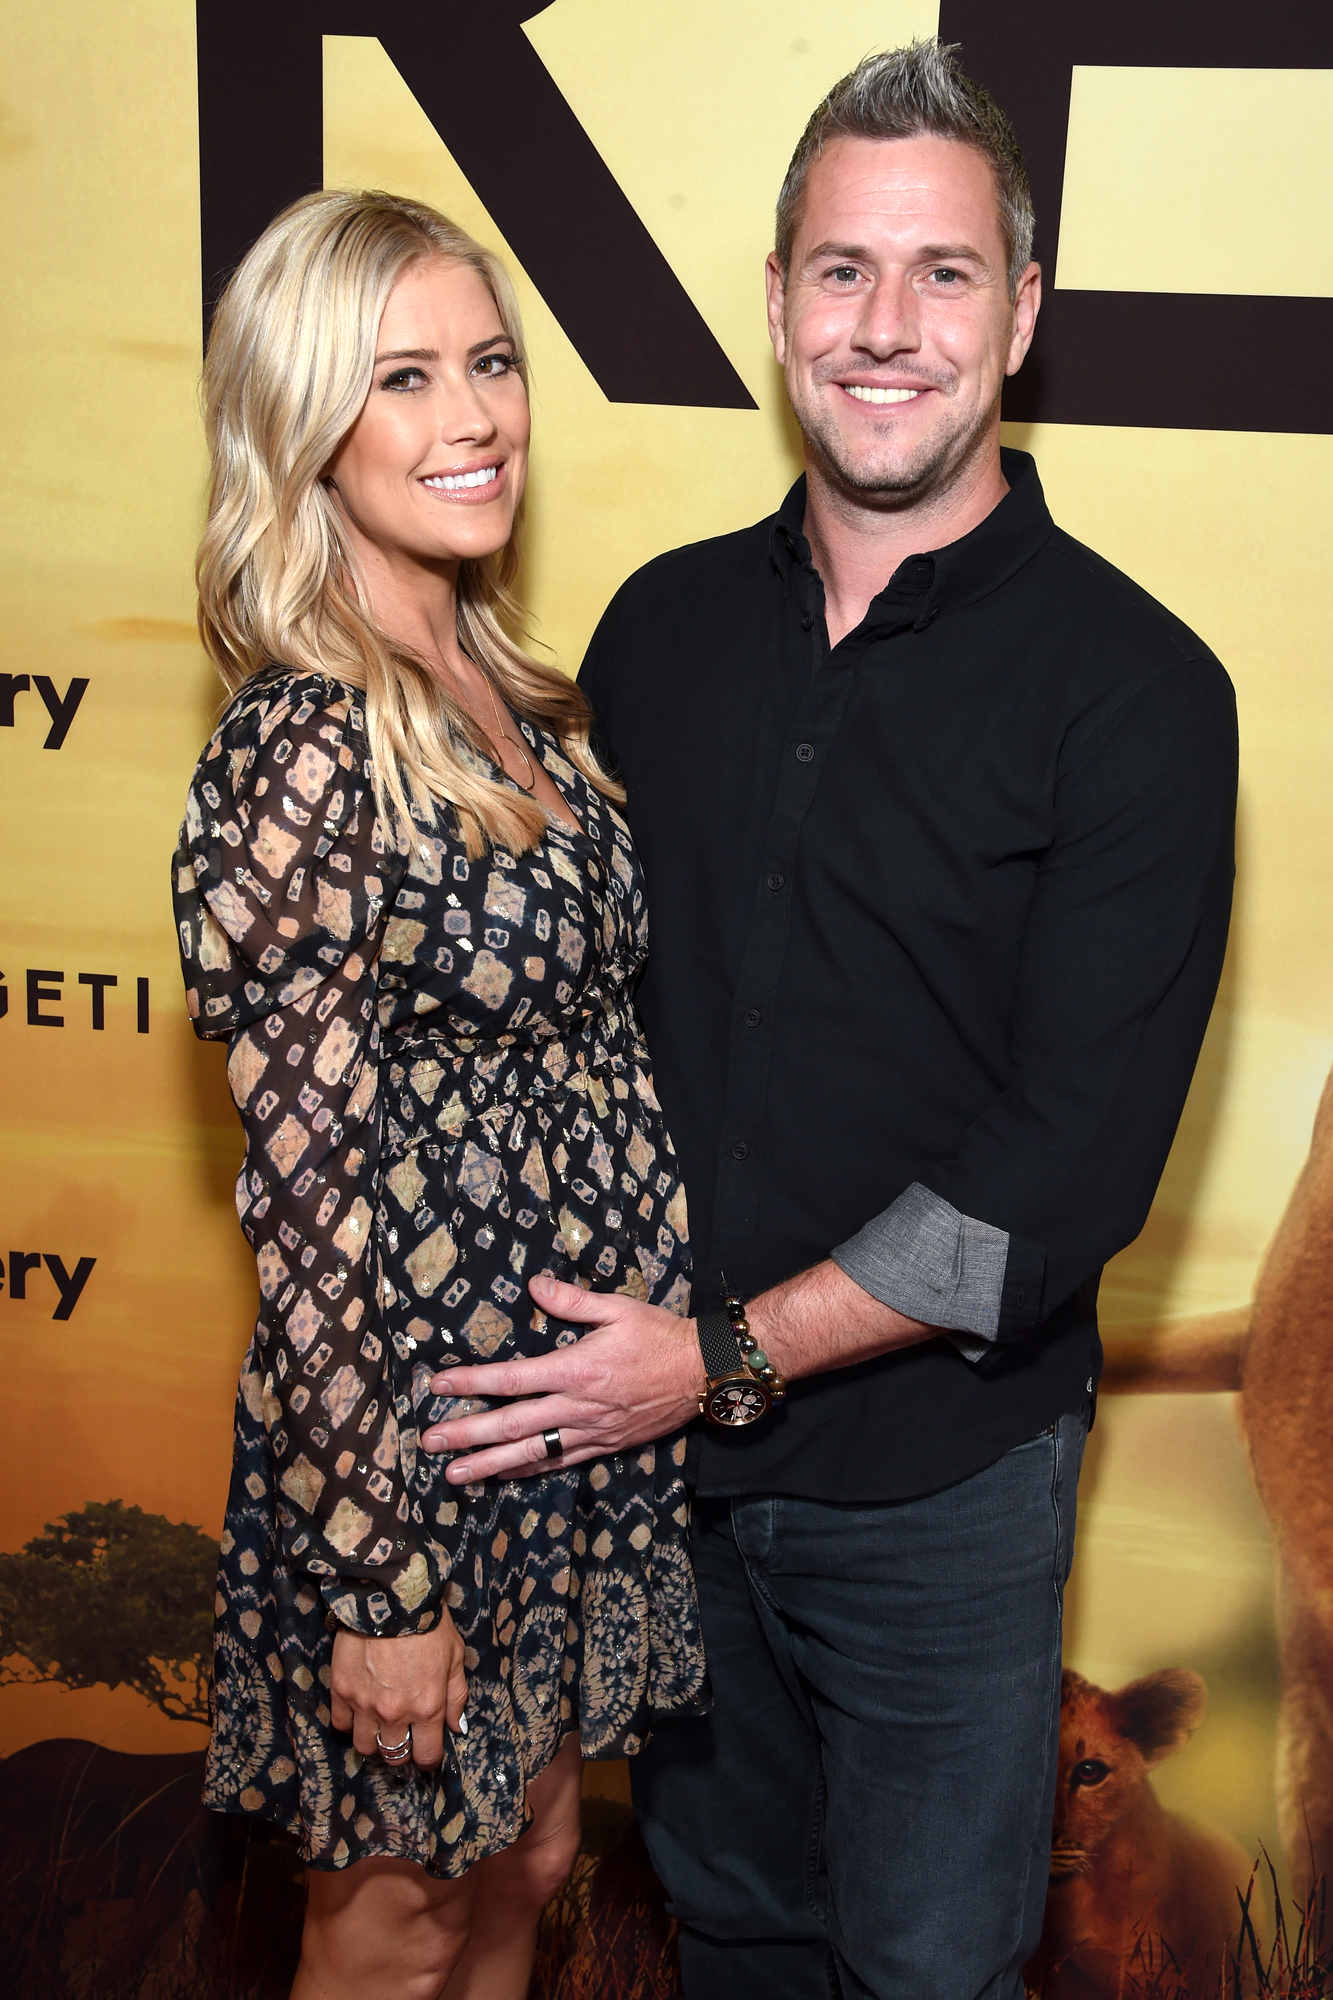 Christina Anstead and Ant Anstead